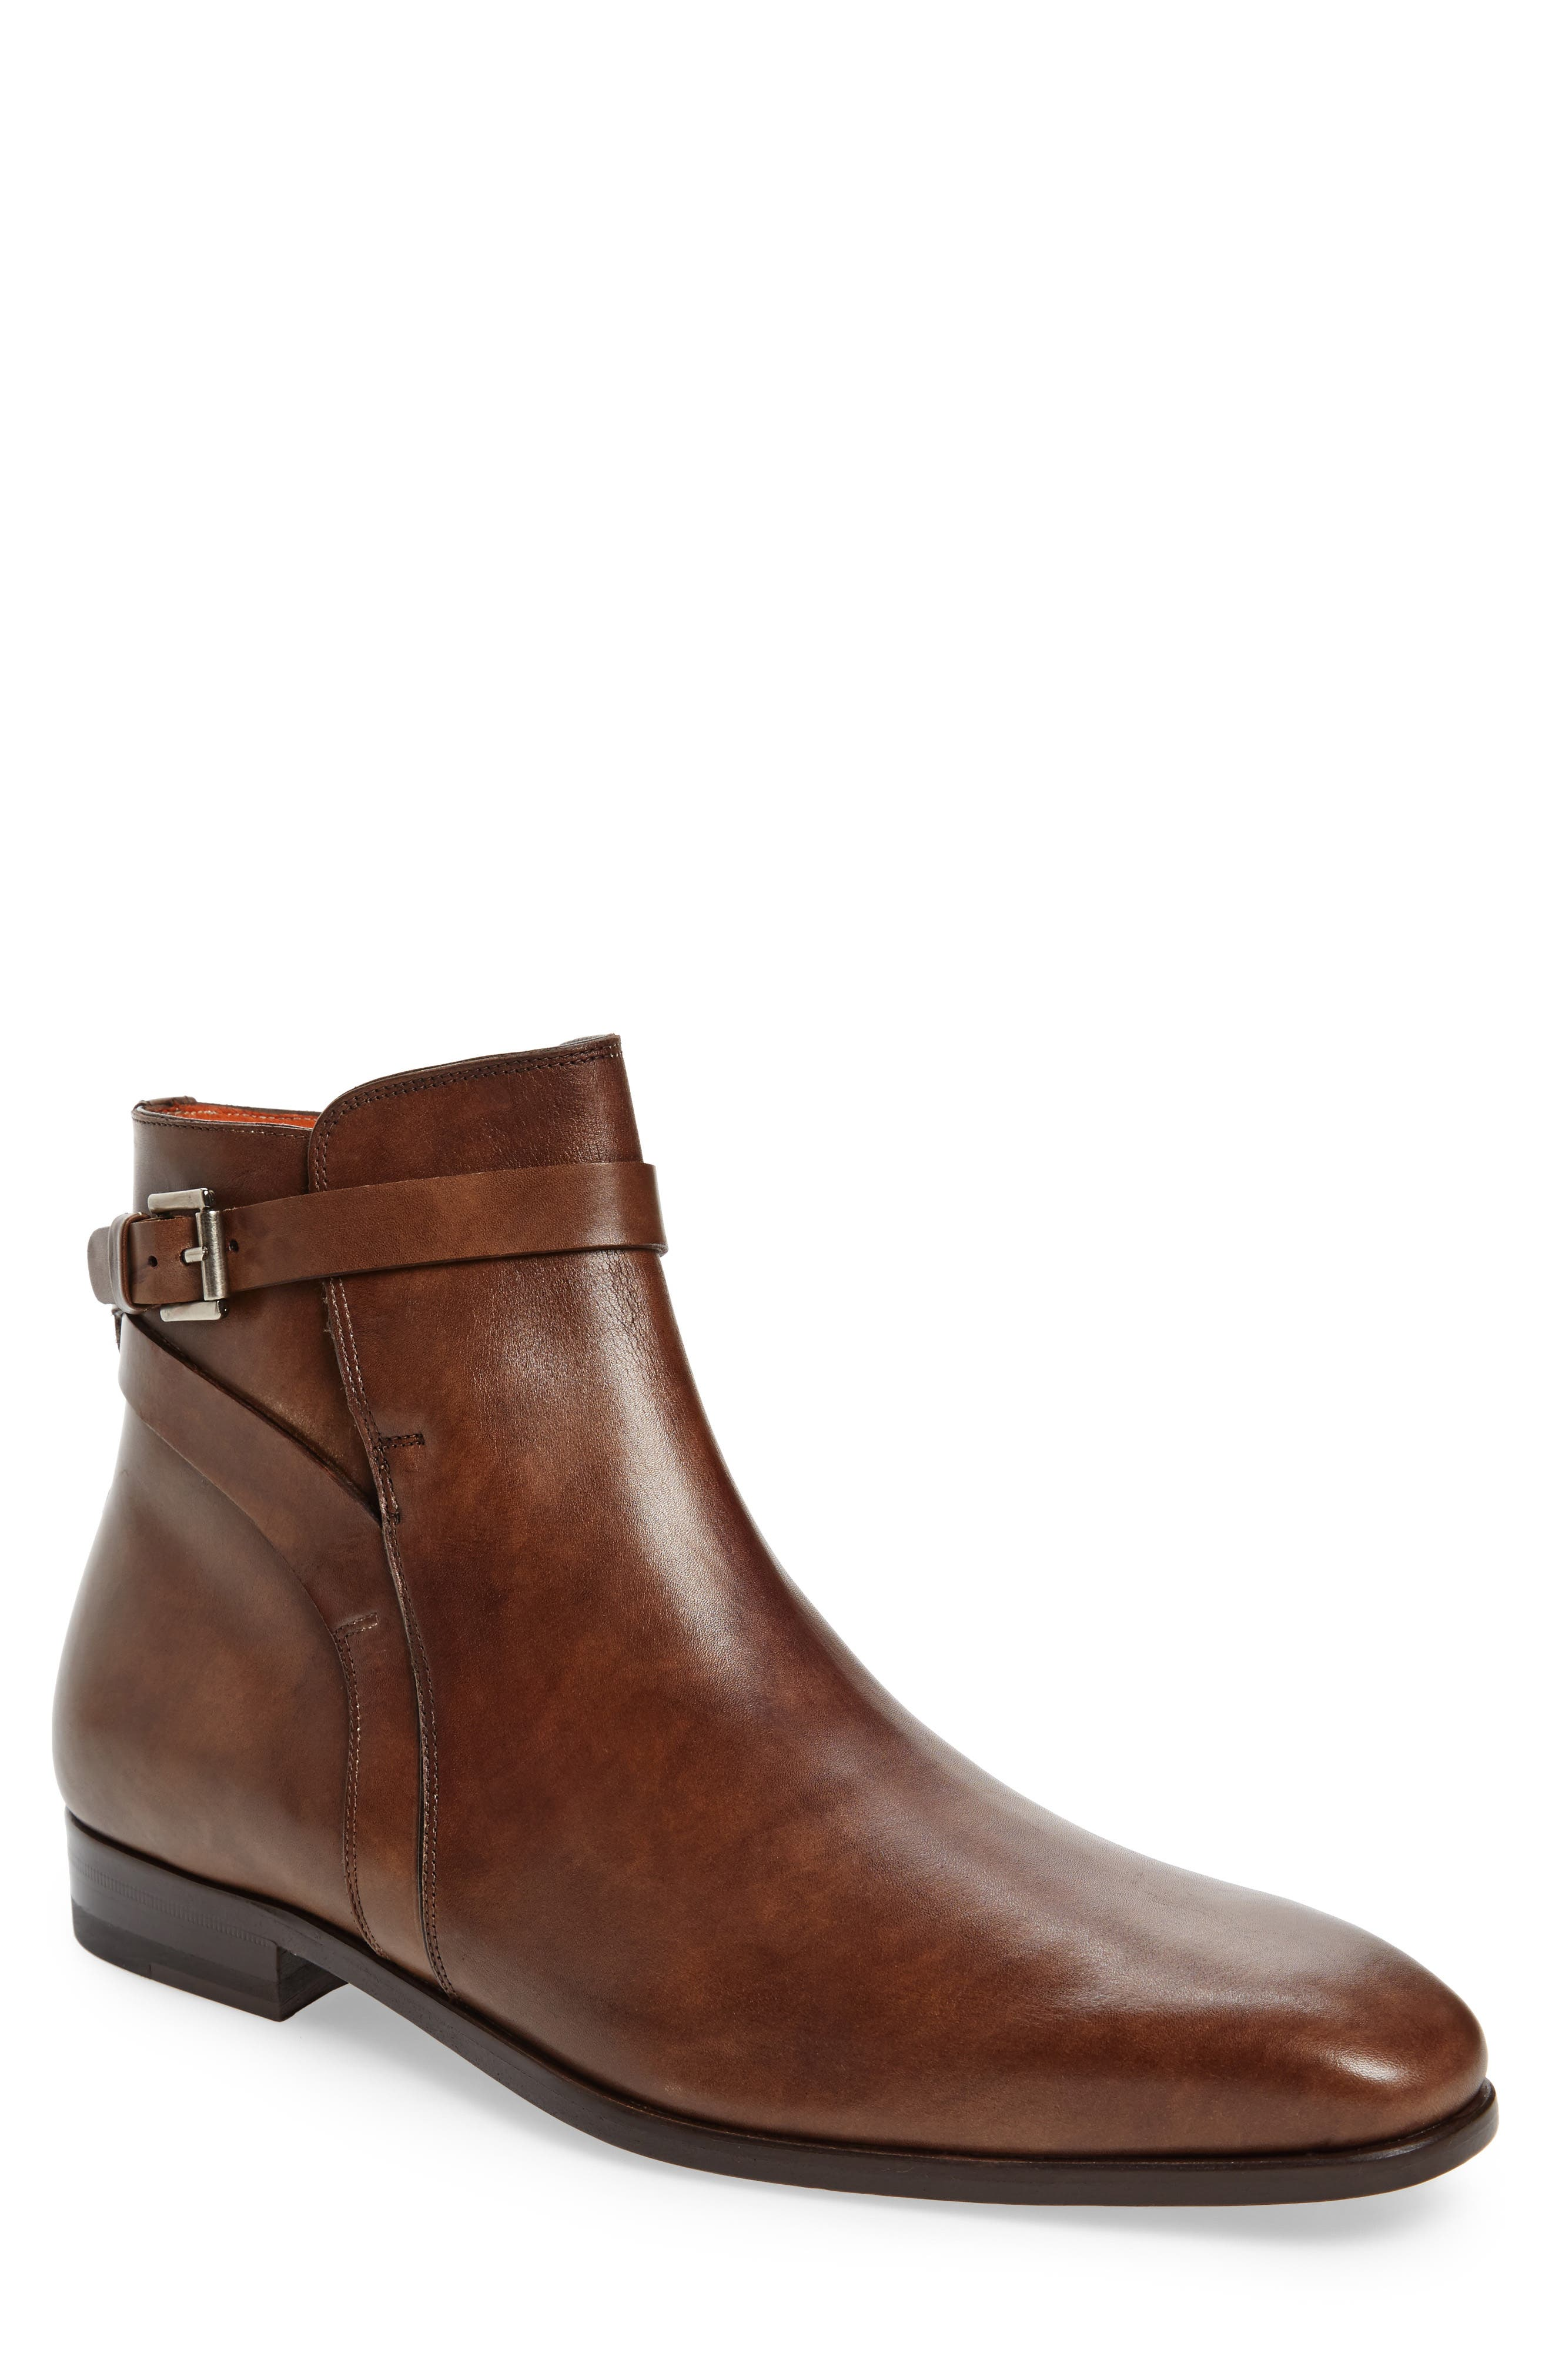 Viso Zip Boot,                         Main,                         color, TAUPE LEATHER